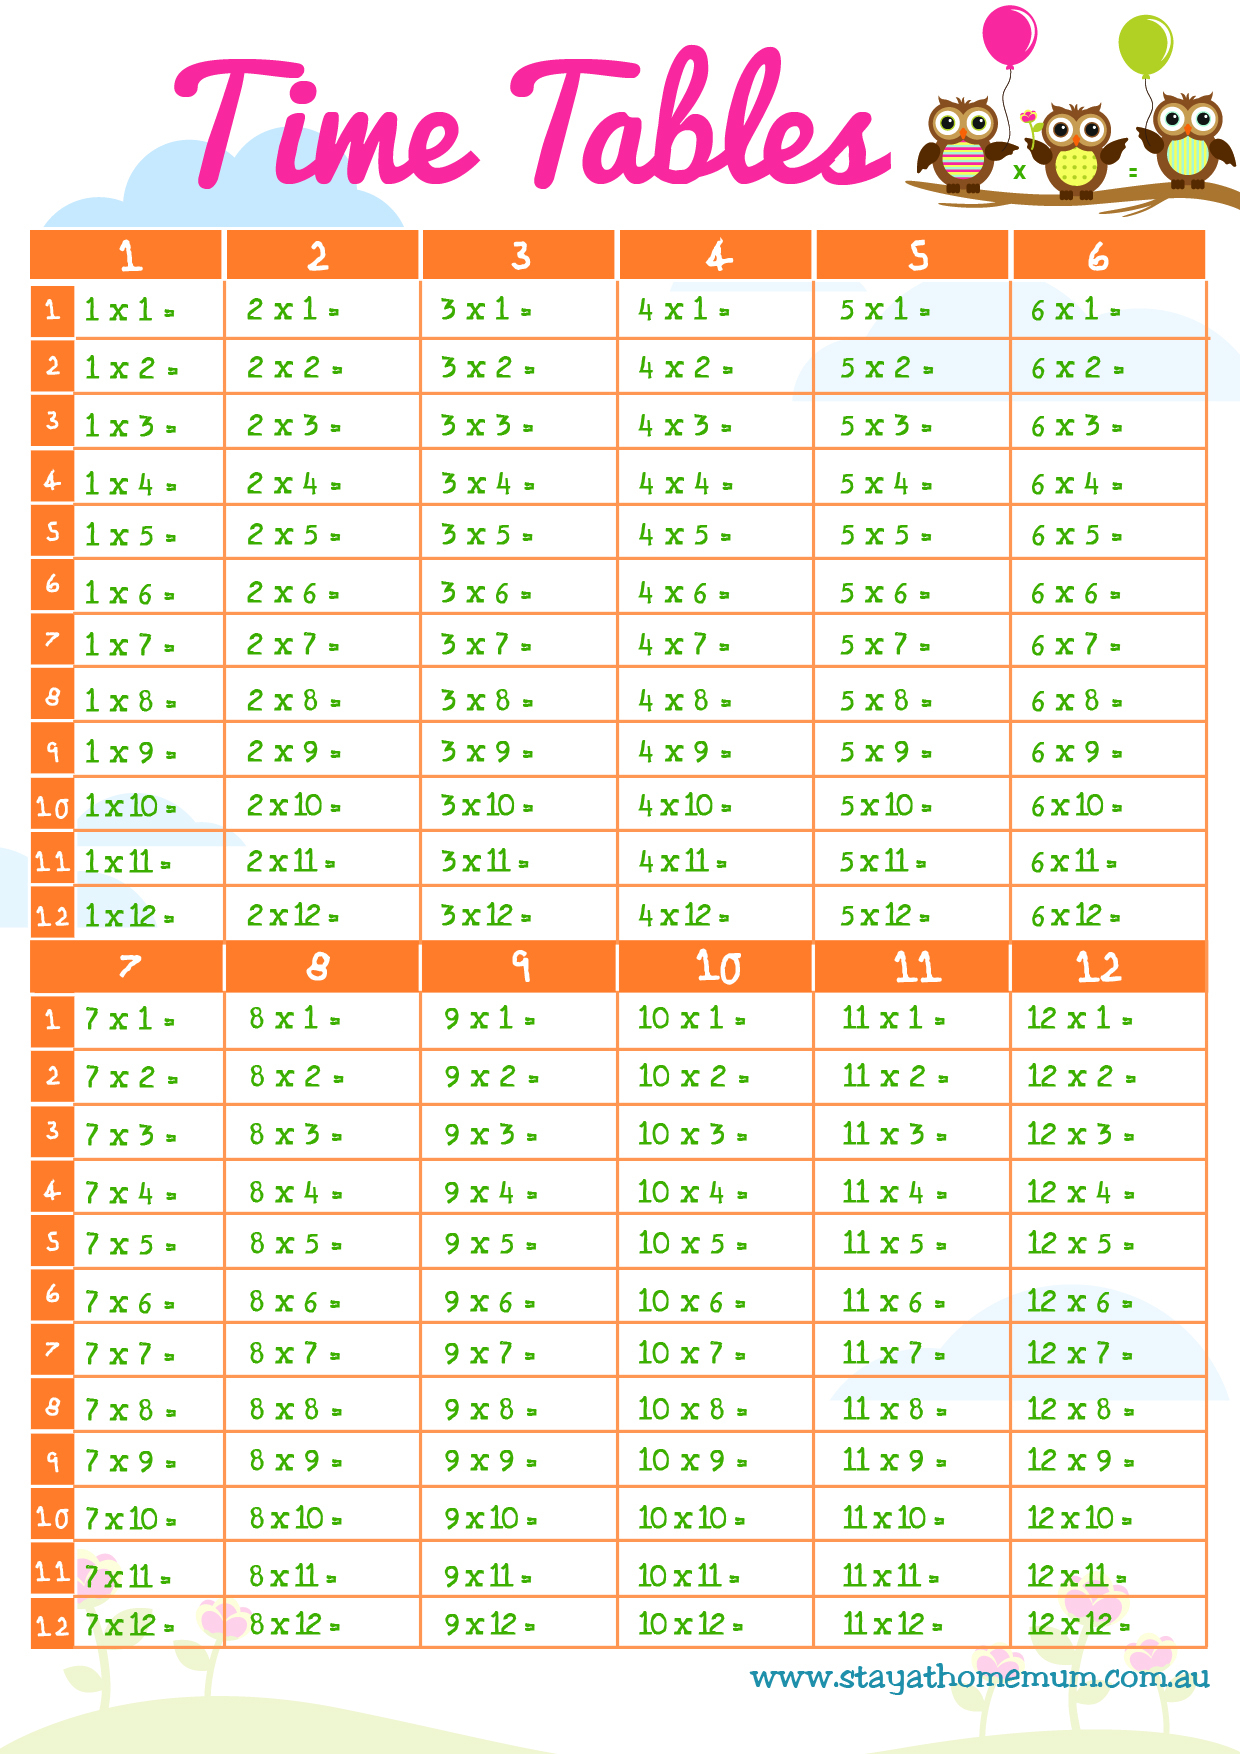 Times Tables - Free Printable - Stay At Home Mum within Printable Multiplication Table Free